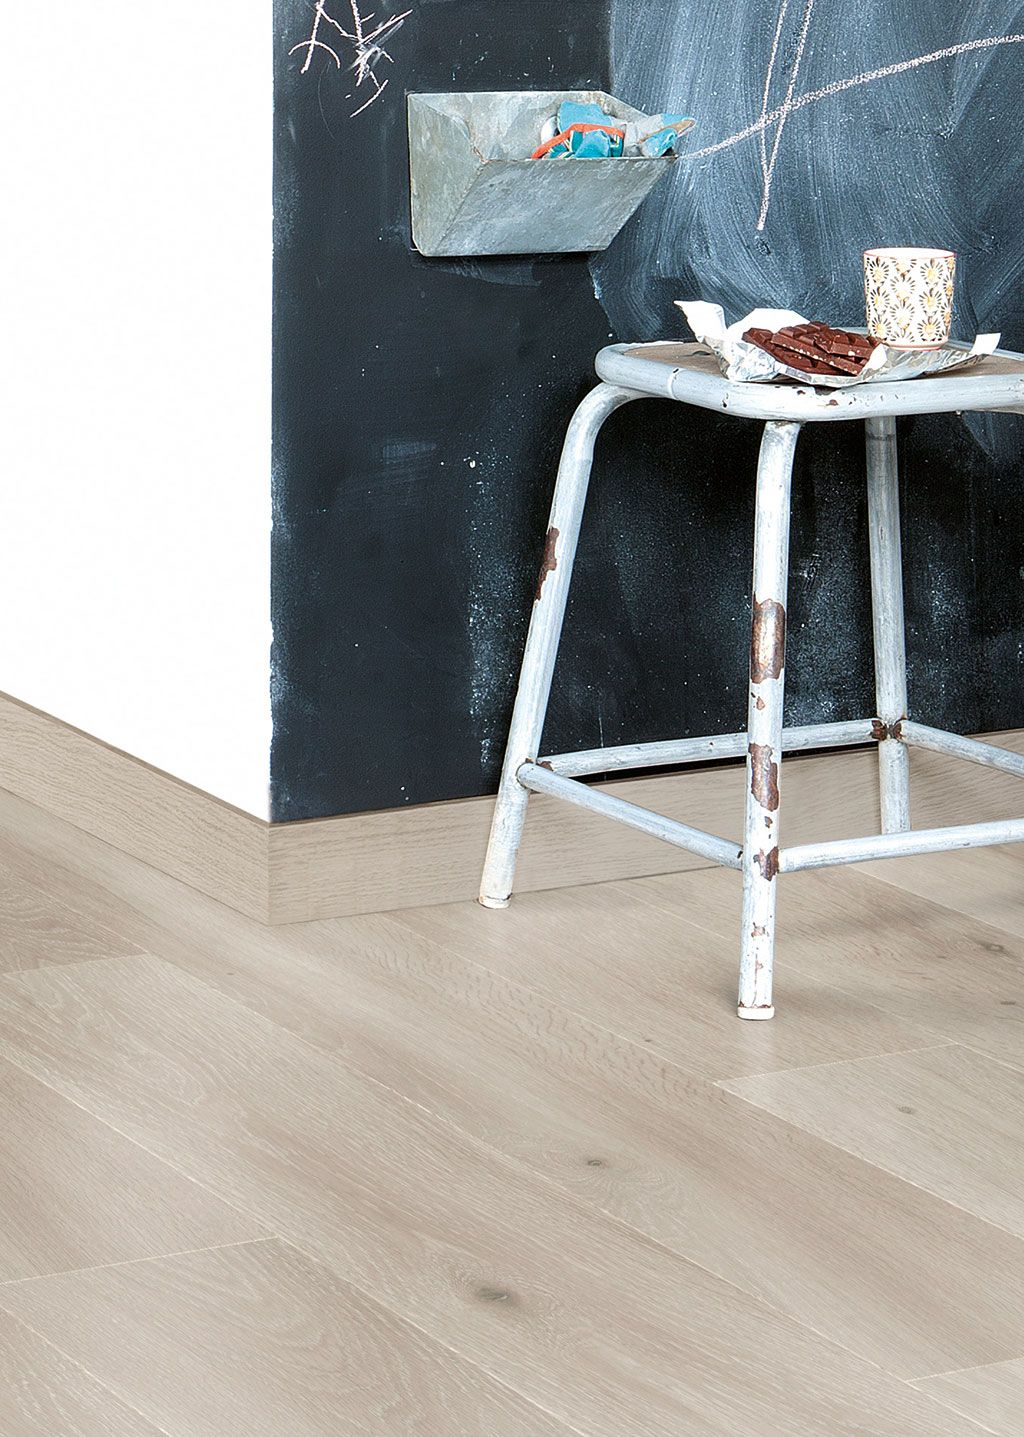 How to choose the perfect kitchen flooring Laminate